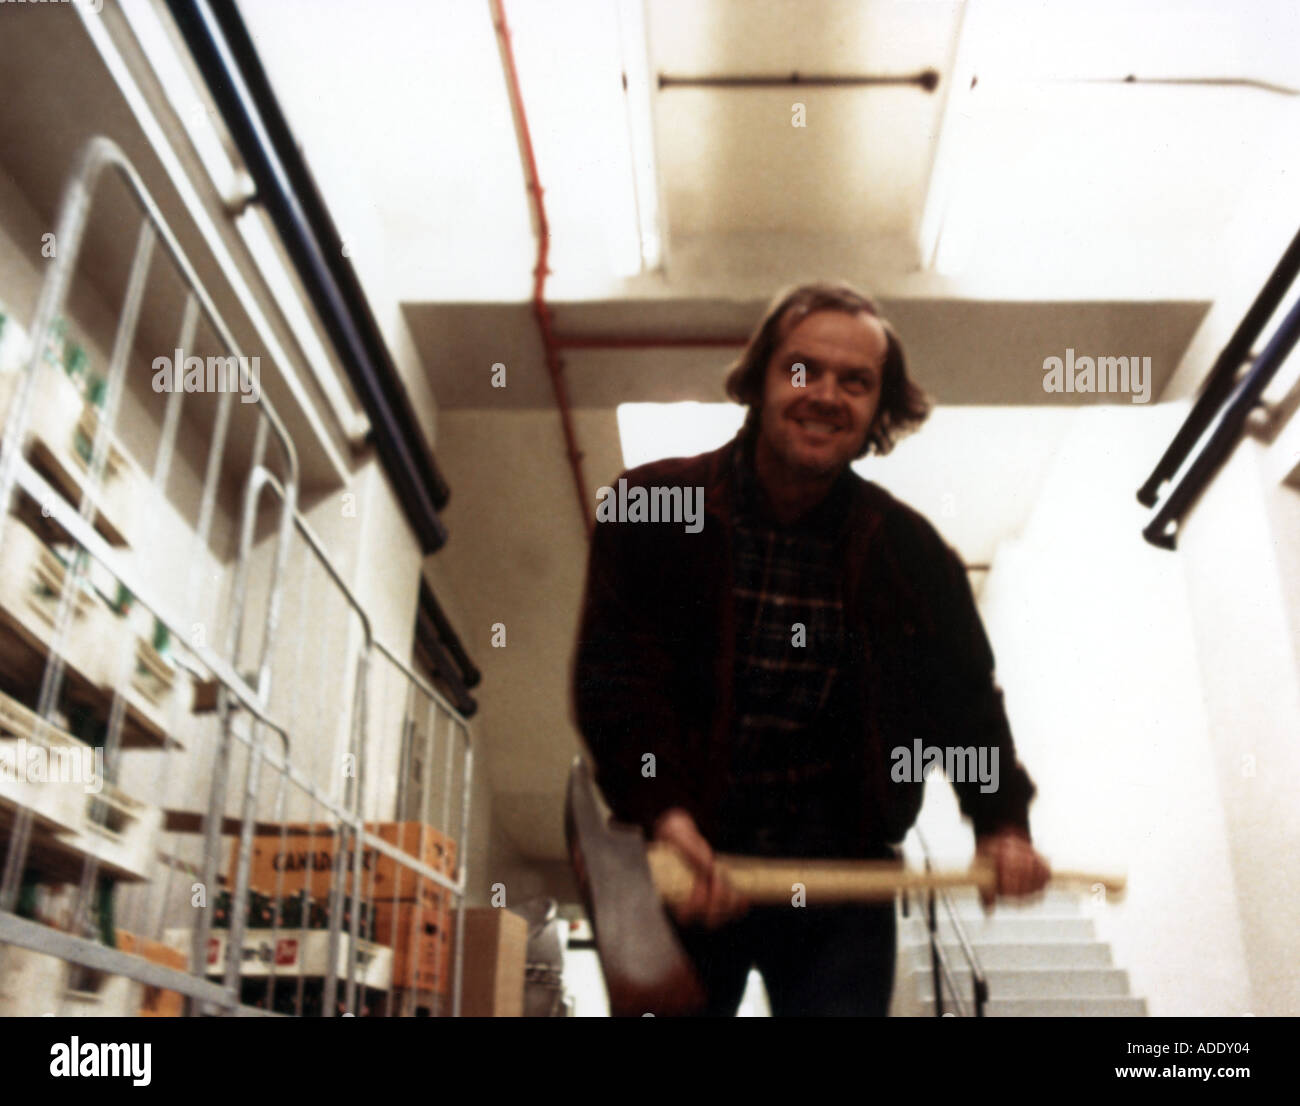 THE SHINING 1980 film starring Jack Nicholson - Stock Image